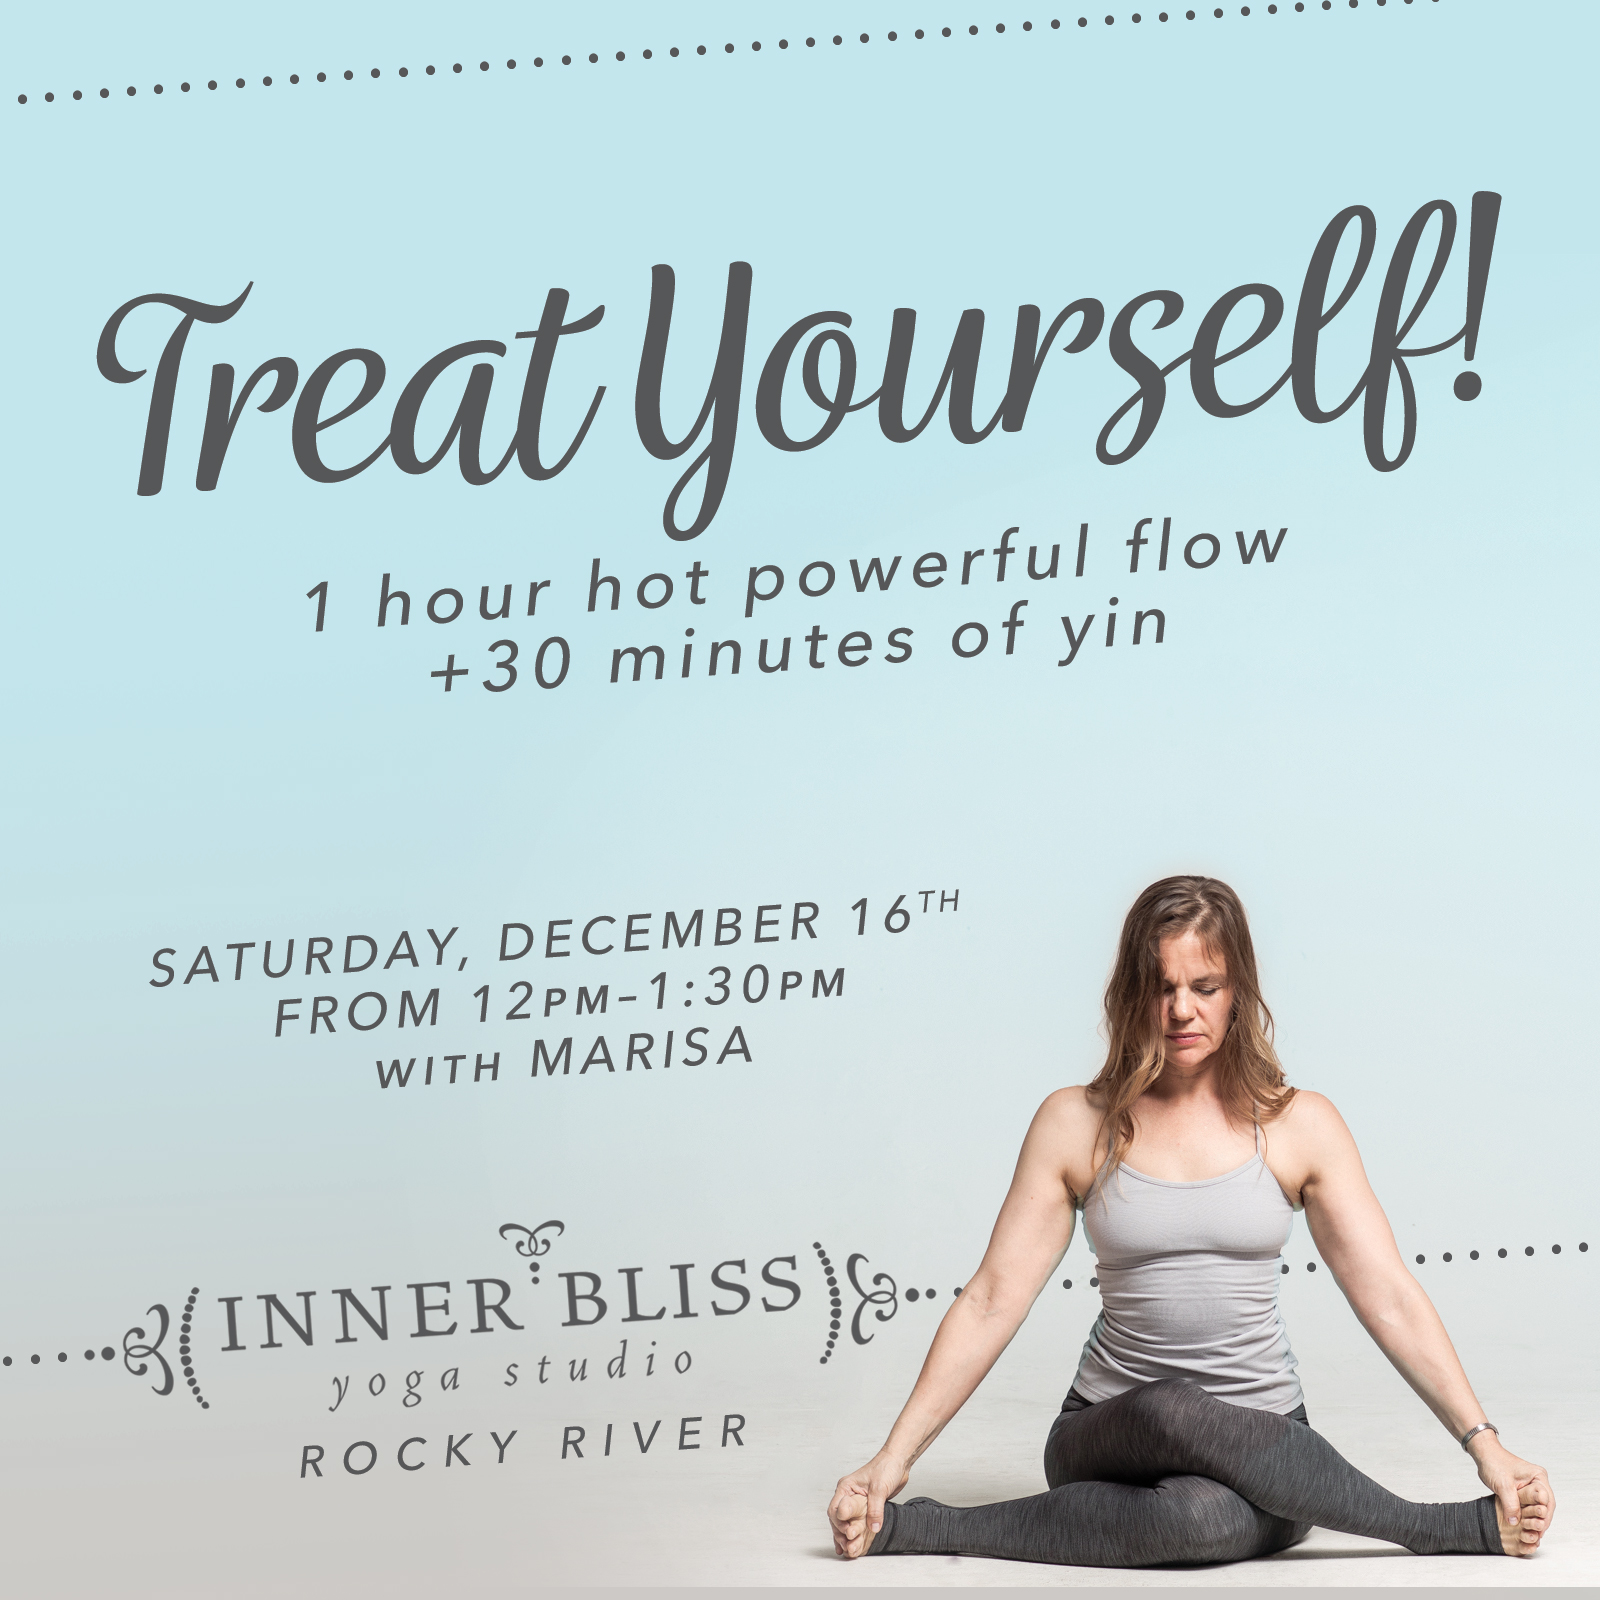 Treat-Yourself!--Hot-Powerful-Flow-+-30-Minutes-Yin-with-Marisa.jpg